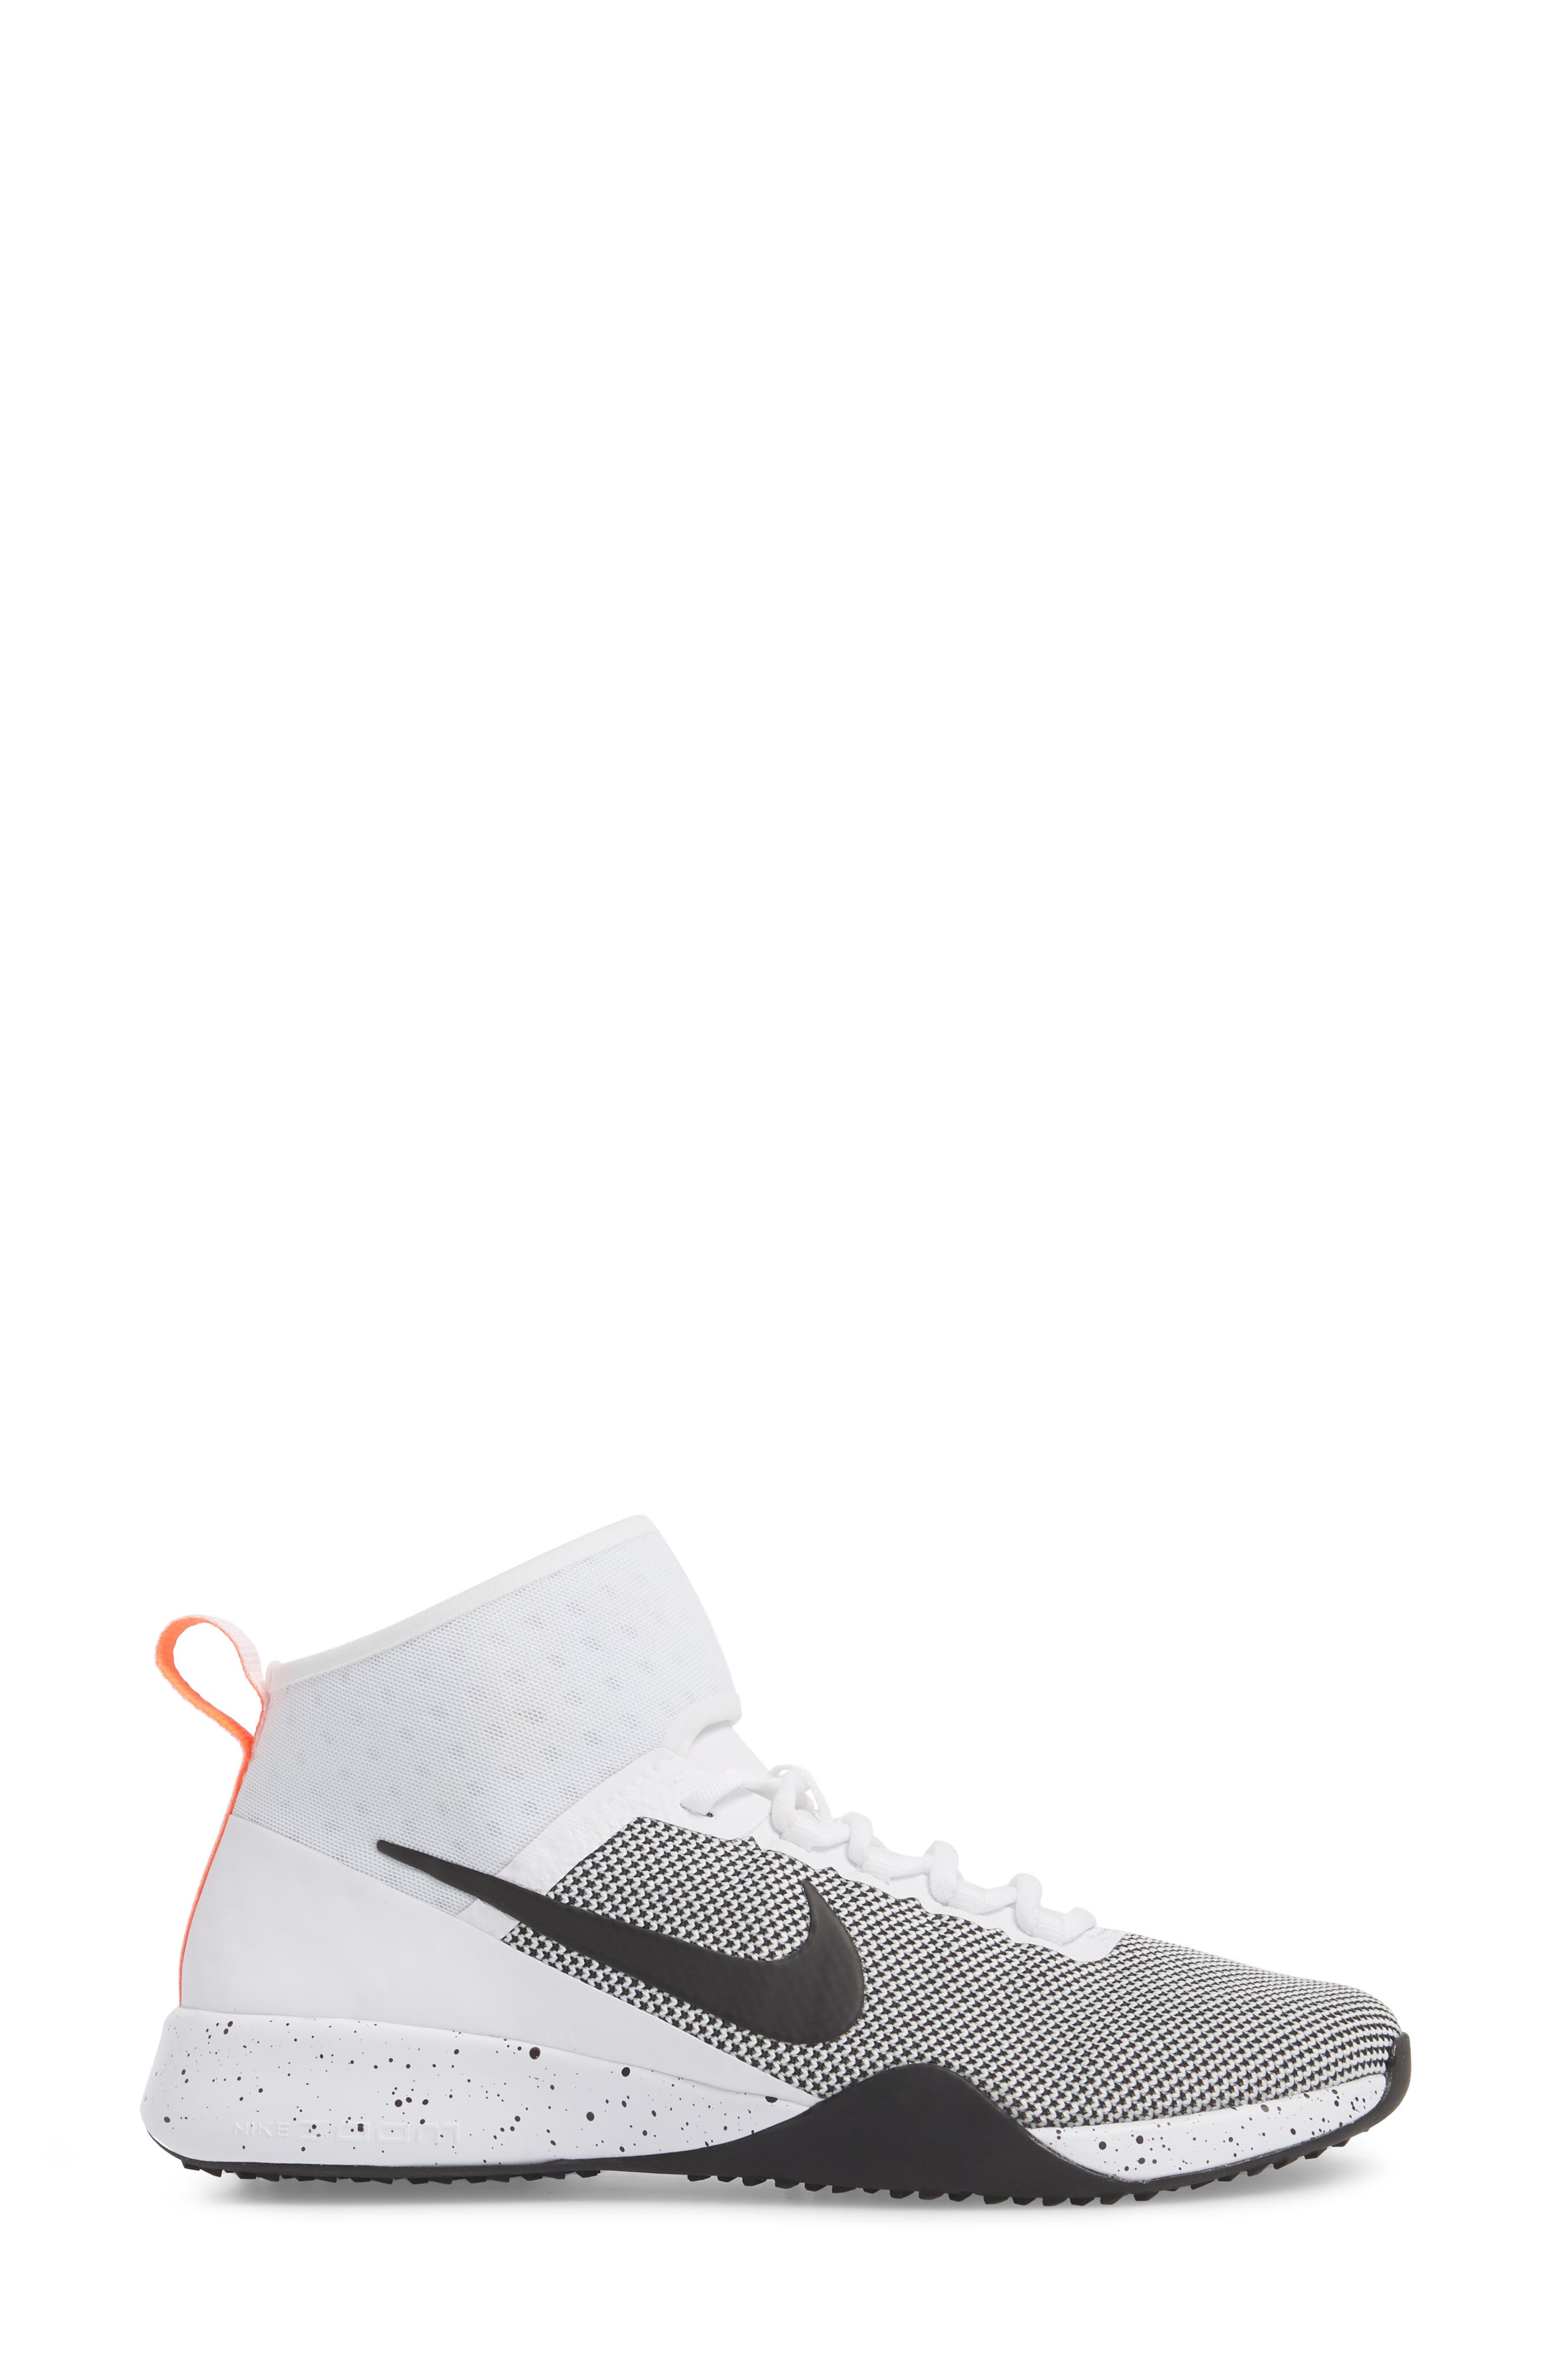 NikeLab Air Zoom Strong 2 Training Shoe,                             Alternate thumbnail 3, color,                             White/ Black/ Total Crimson